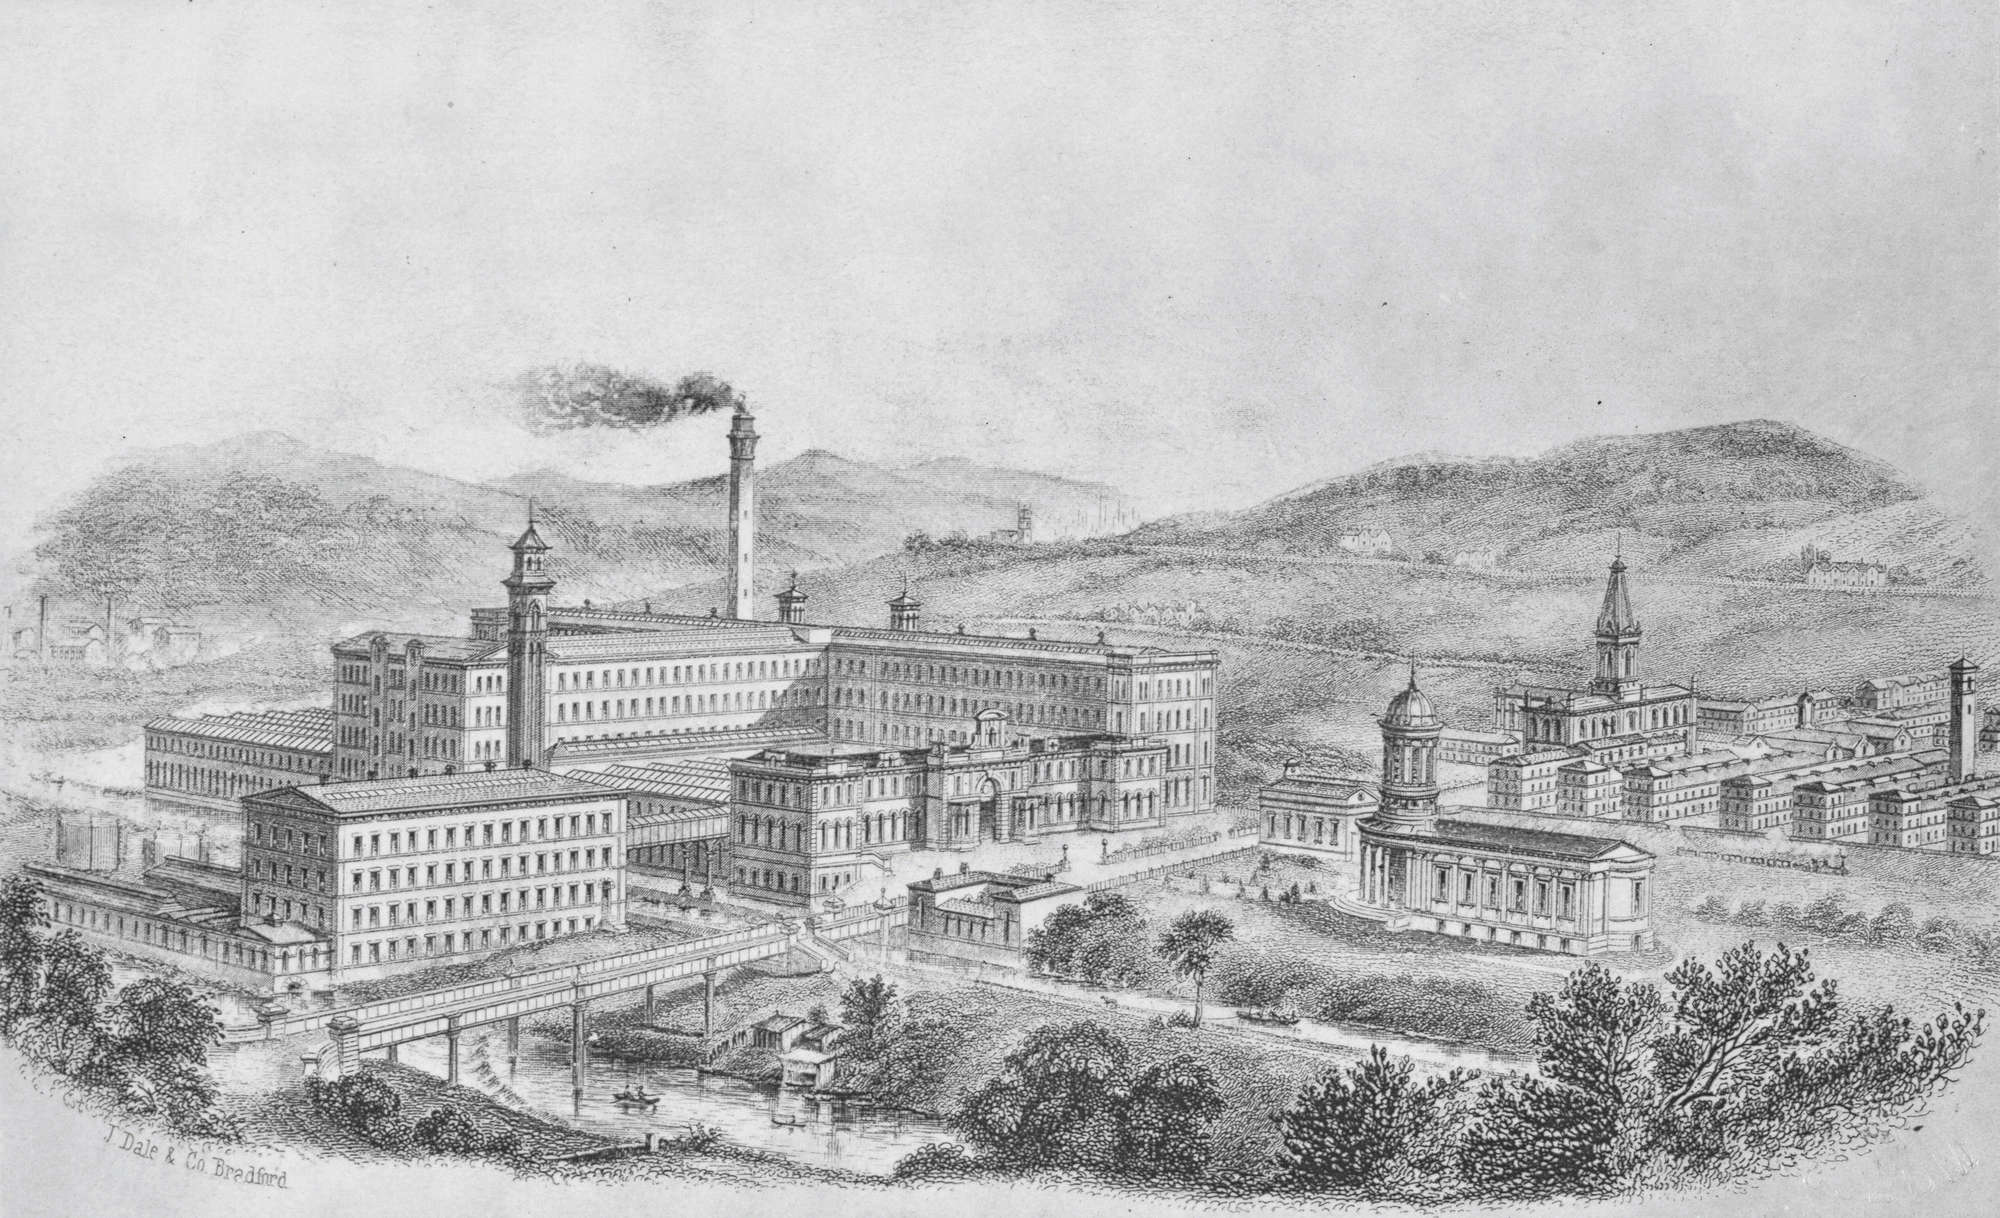 Saltaire, London British Library, 1877.